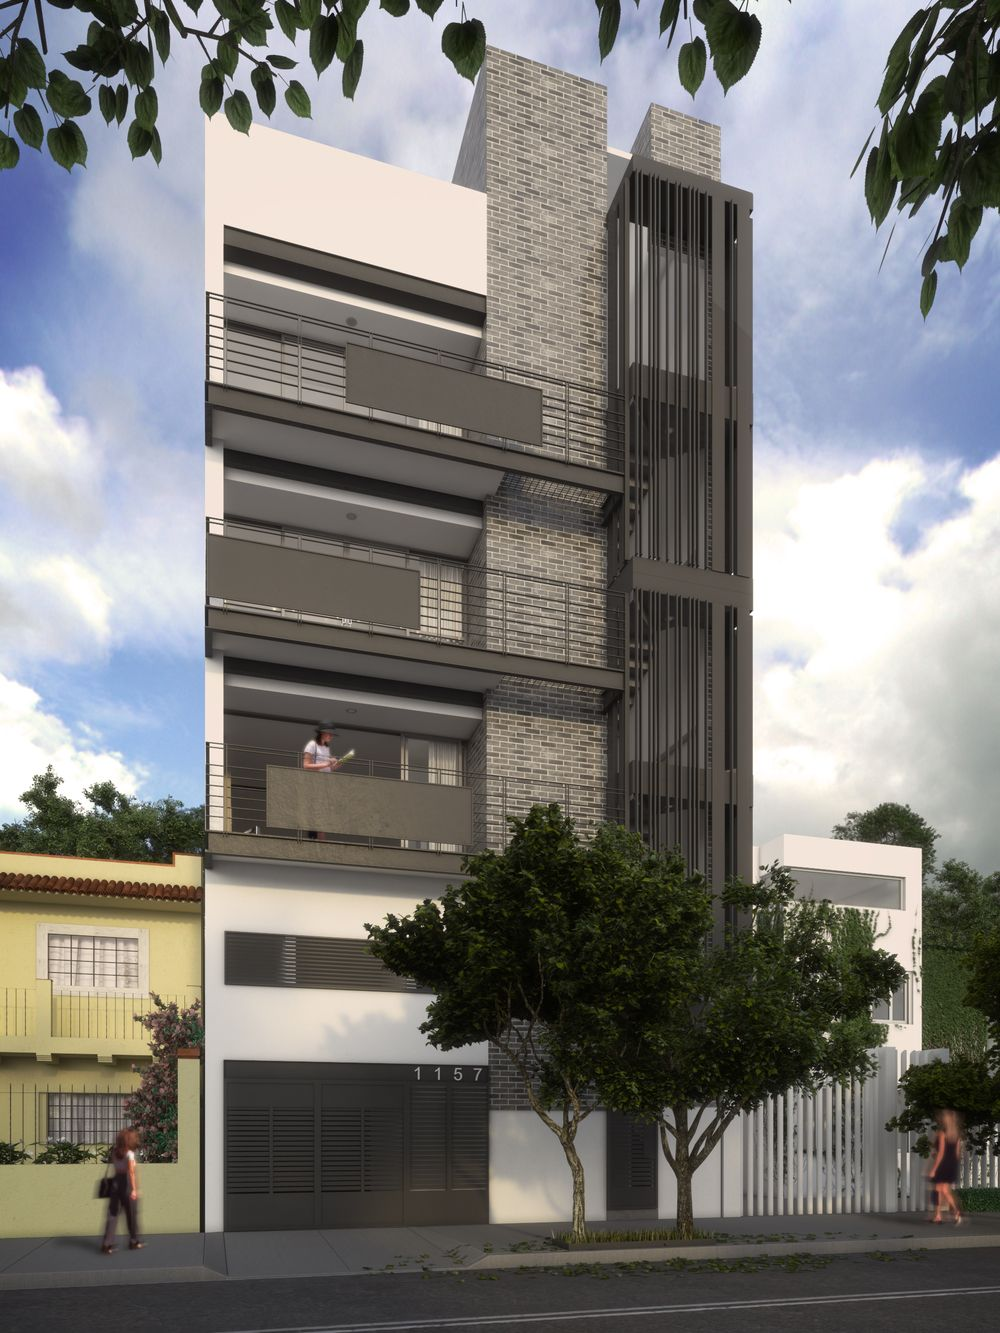 Rr 30x30 amrs fg 1 27 05 houses pinterest for Fachadas de edificios modernos